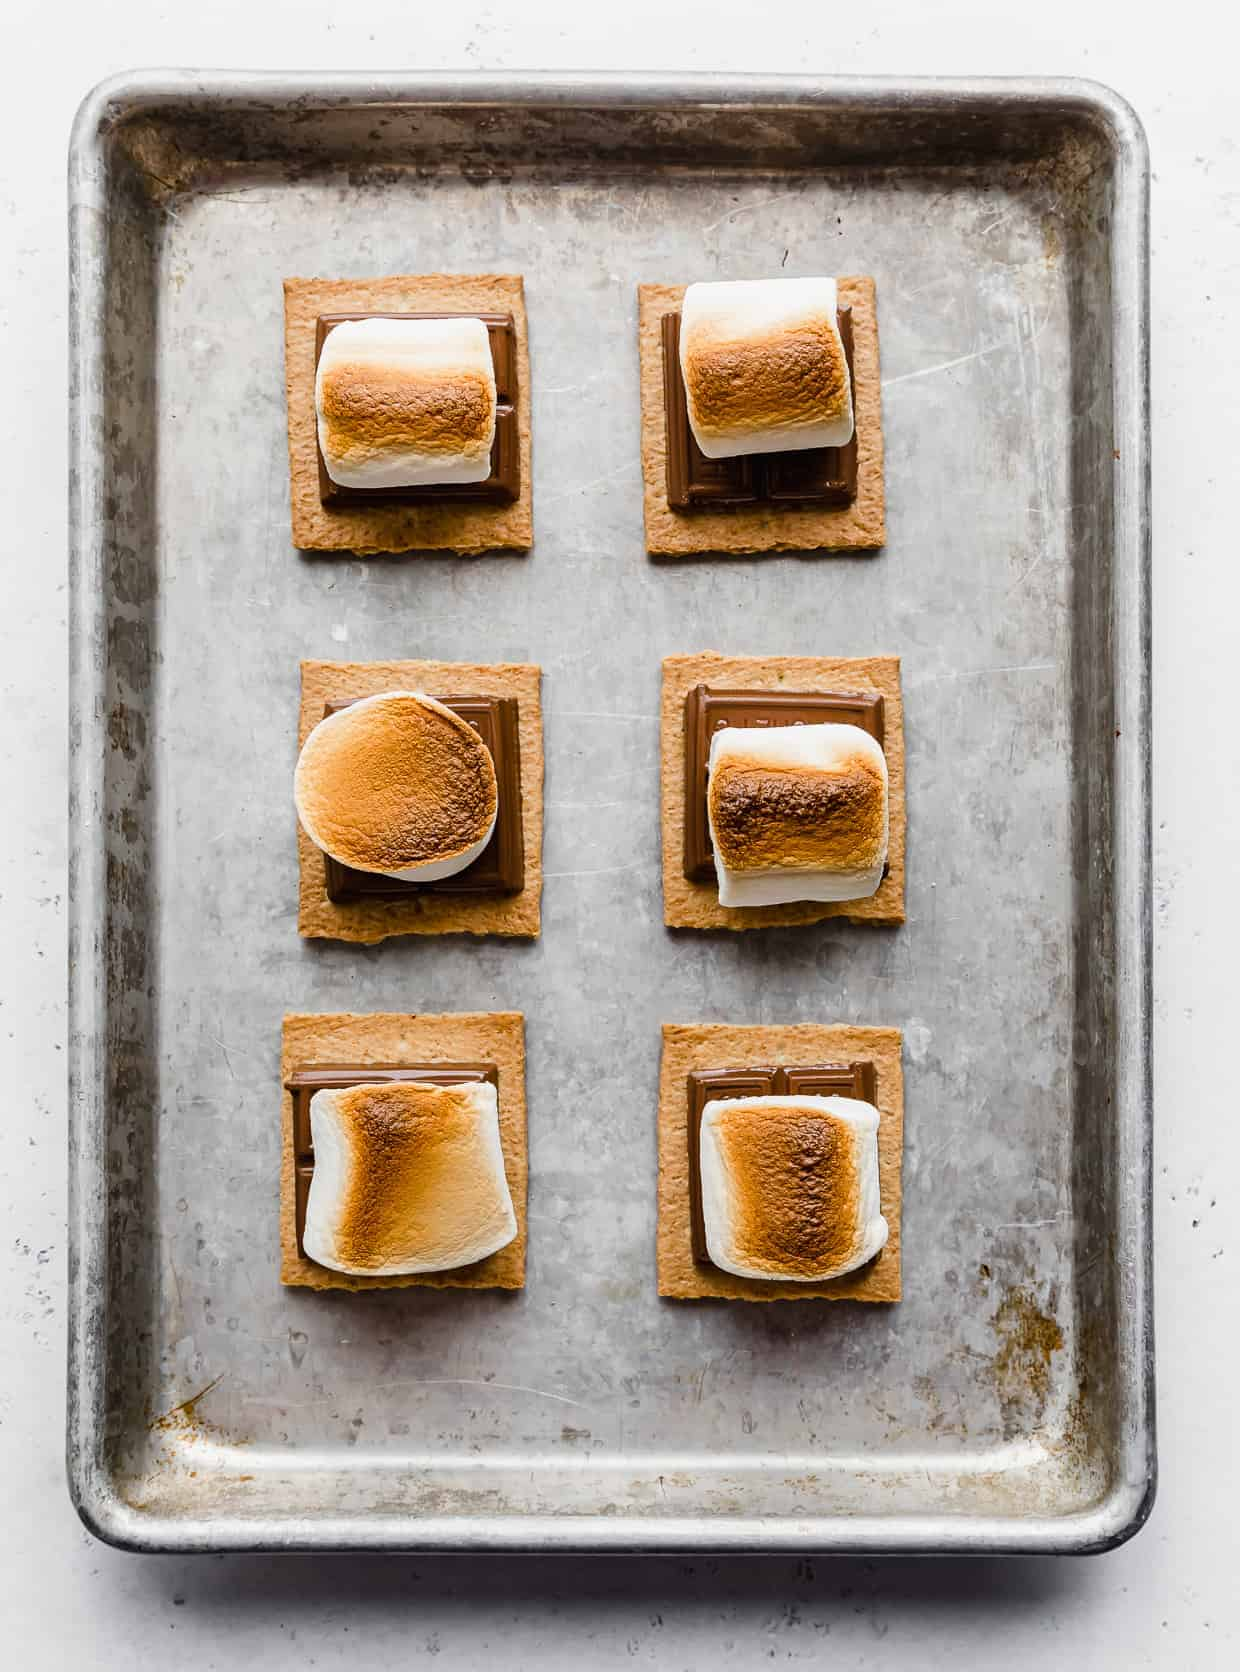 Toasted Oven S'mores on a baking sheet.